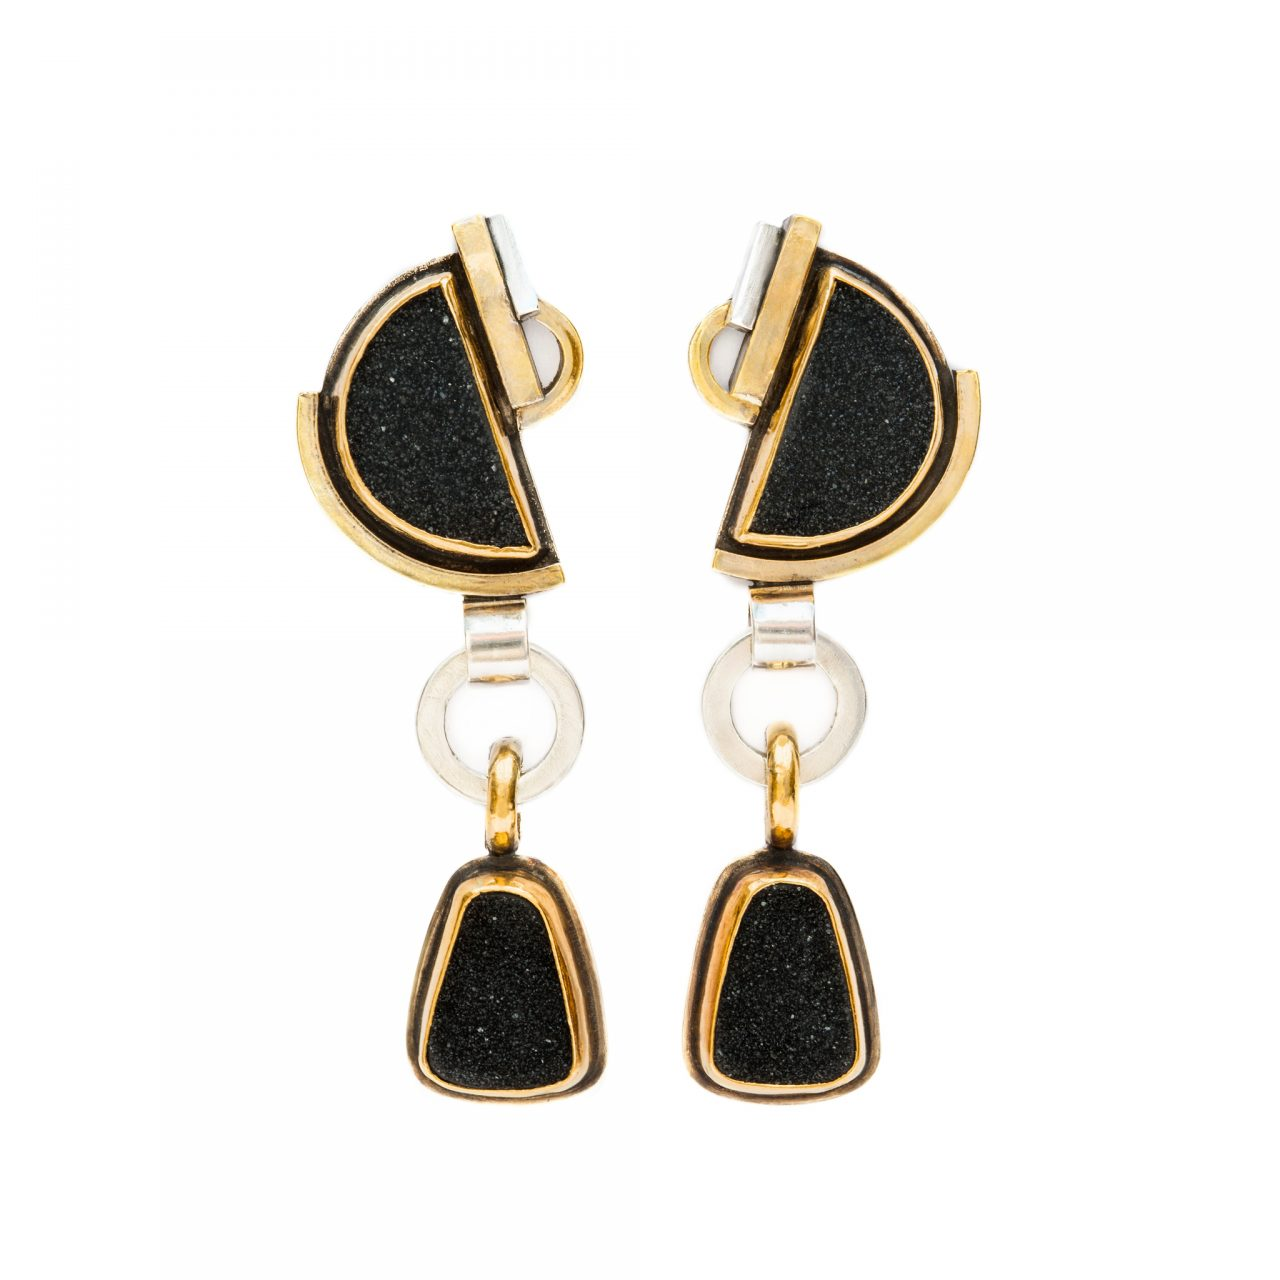 Earrings with Druzies